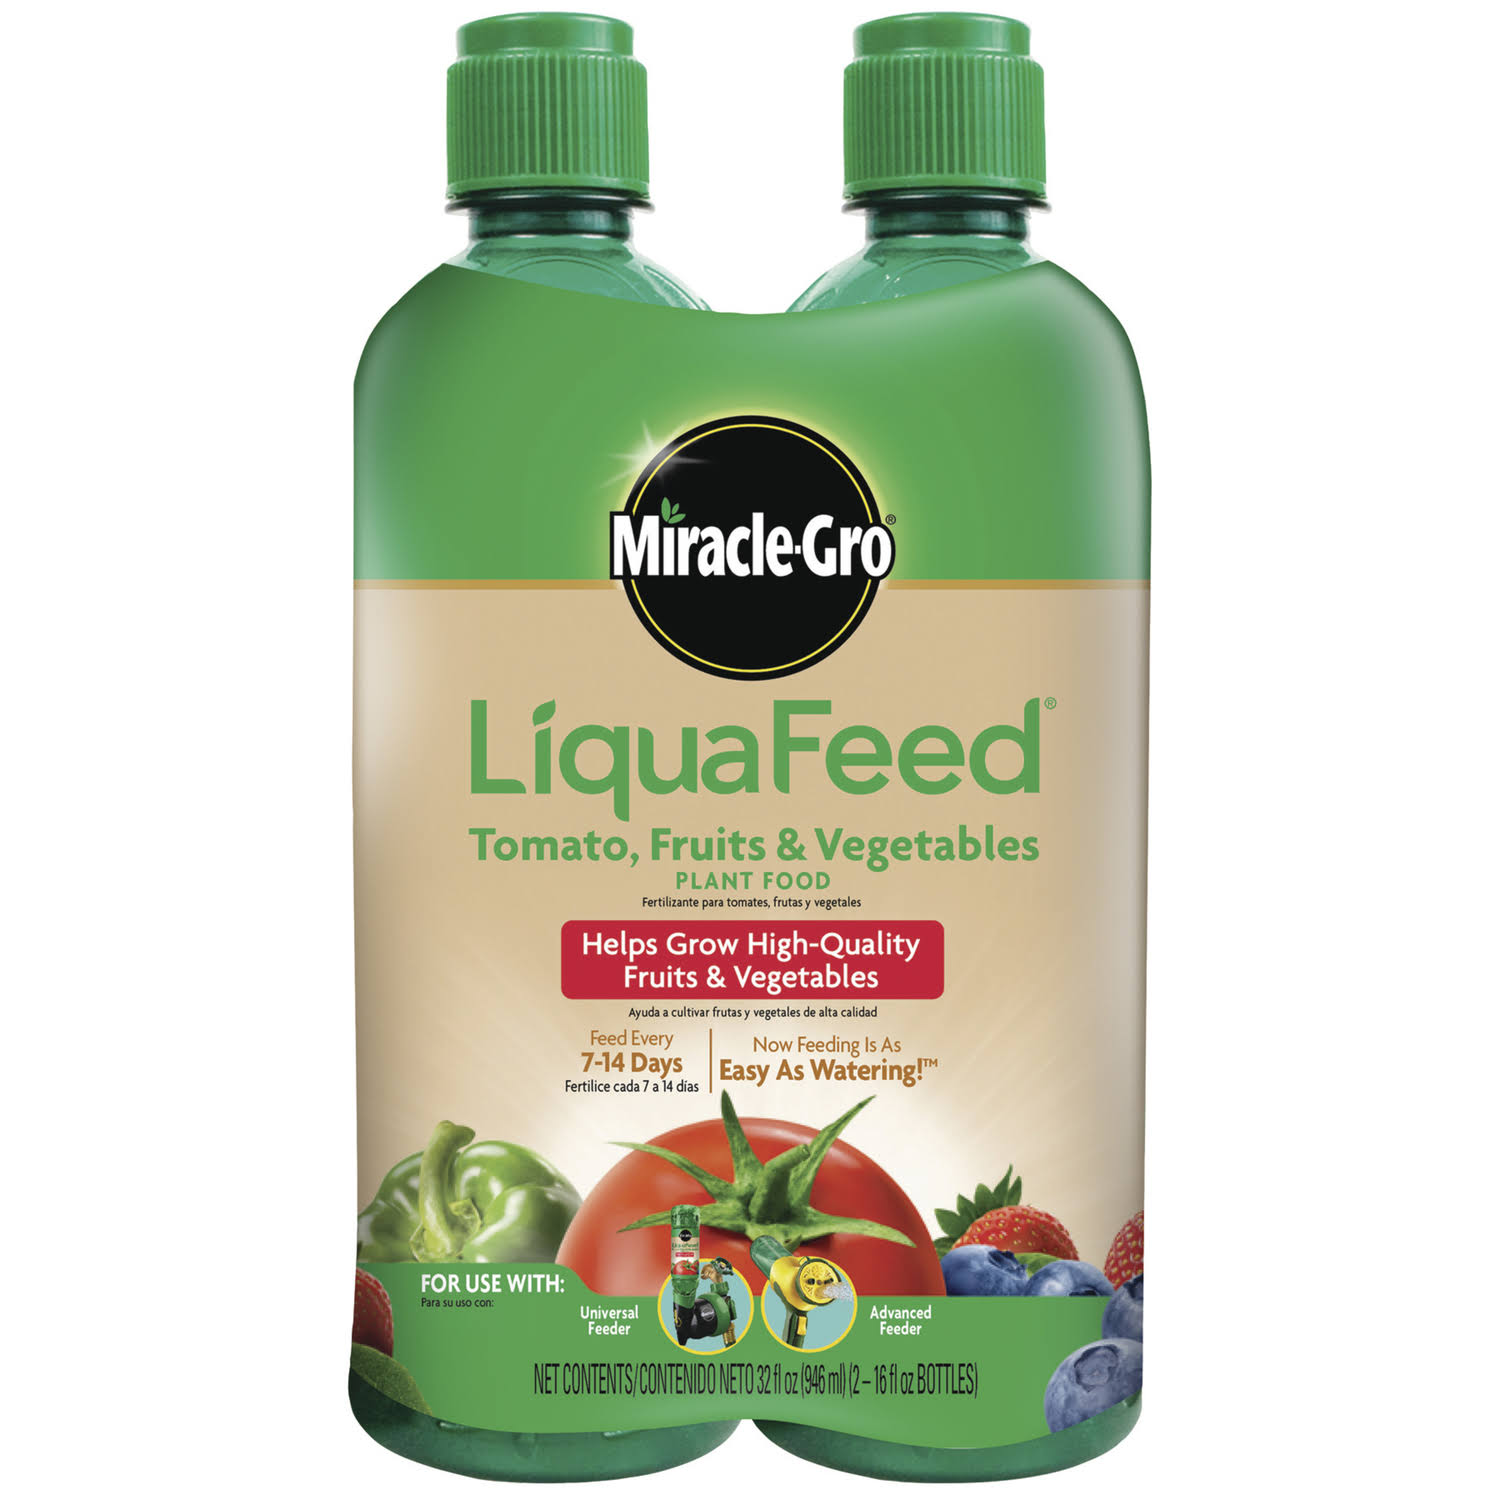 Miracle Gro Liqua Feed Tomato Fruits and Vegetables Plant Food Refill - 2pk